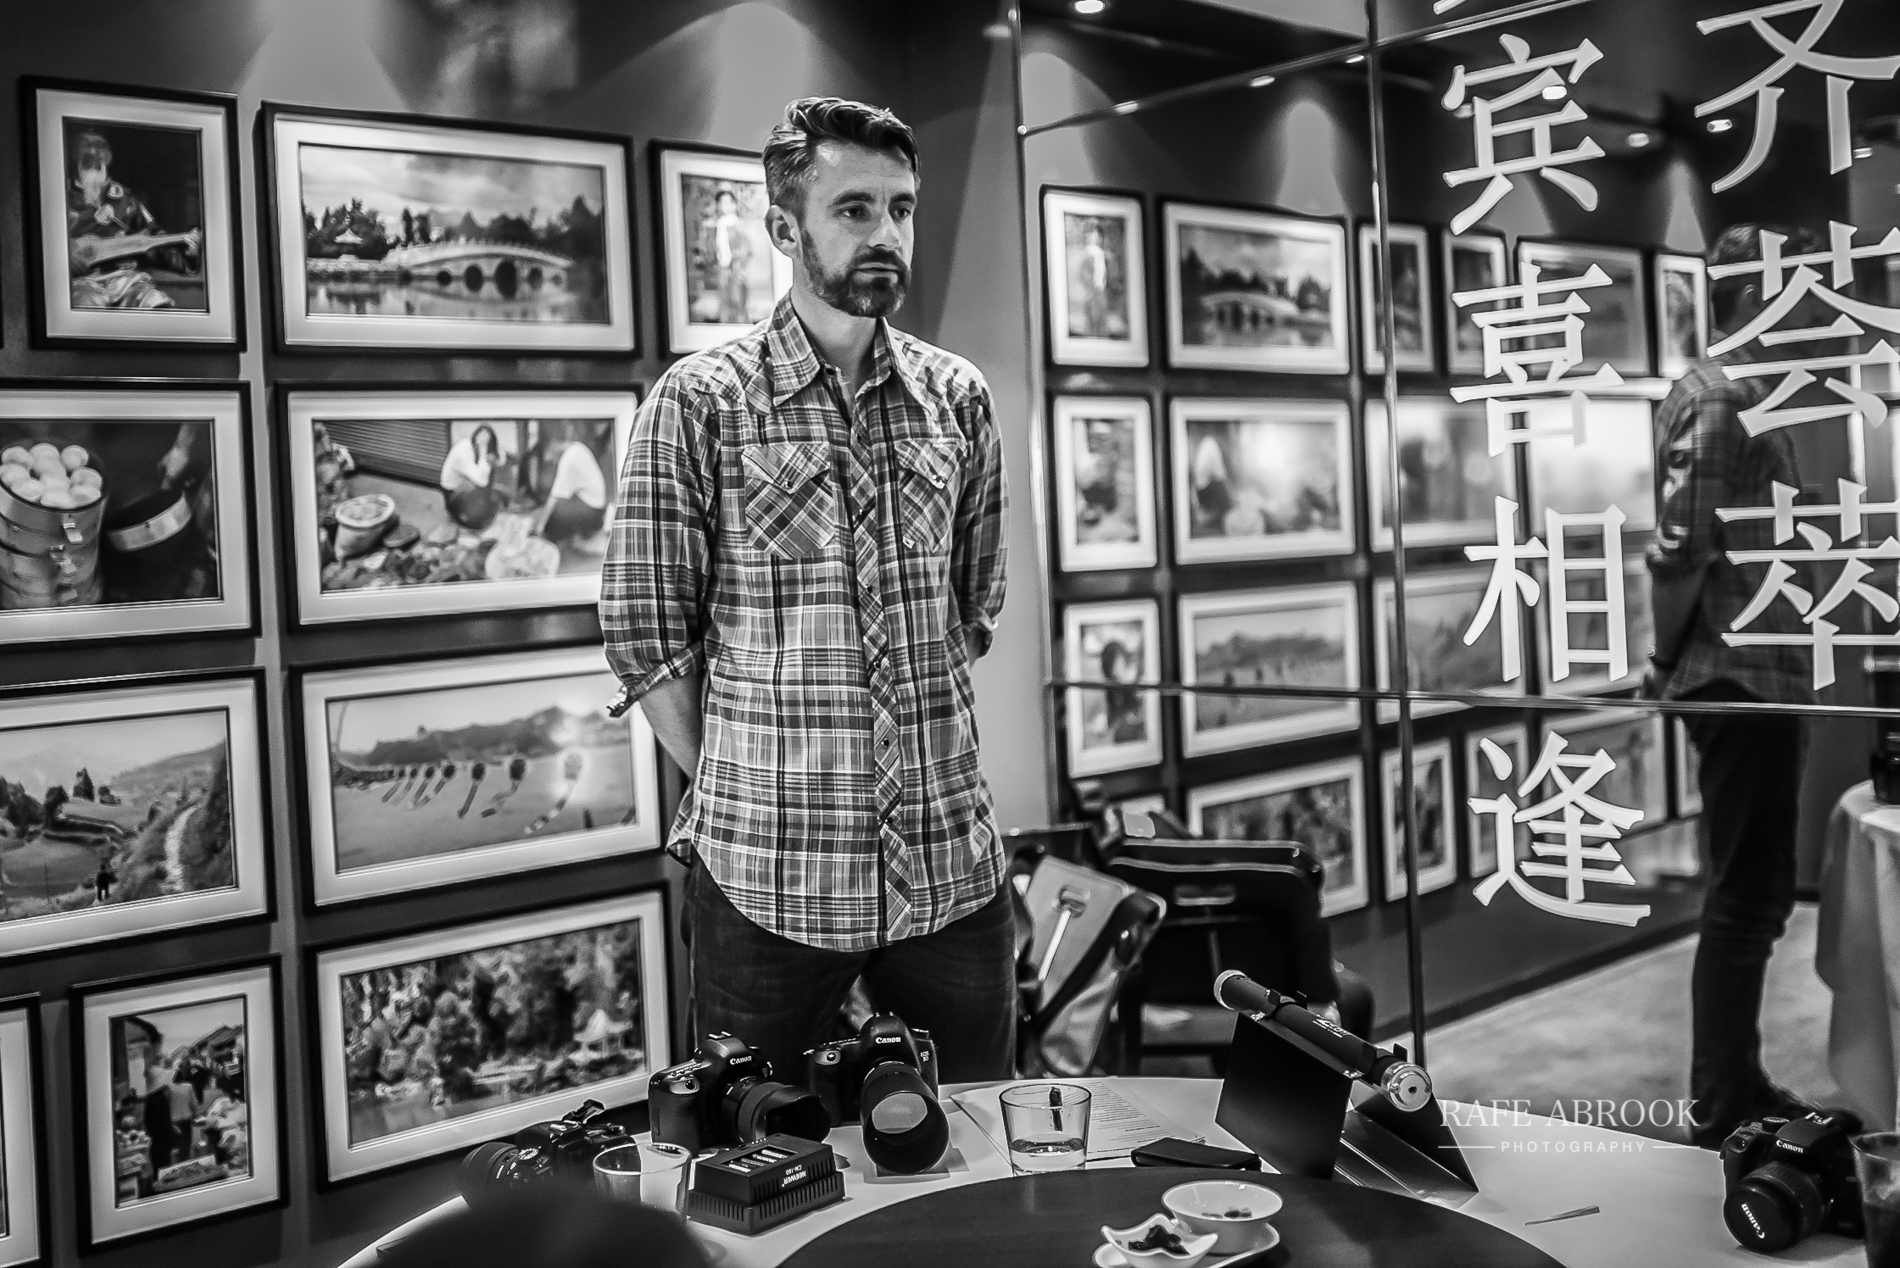 min jiang food blogger rafe abrook photography training-1057.jpg